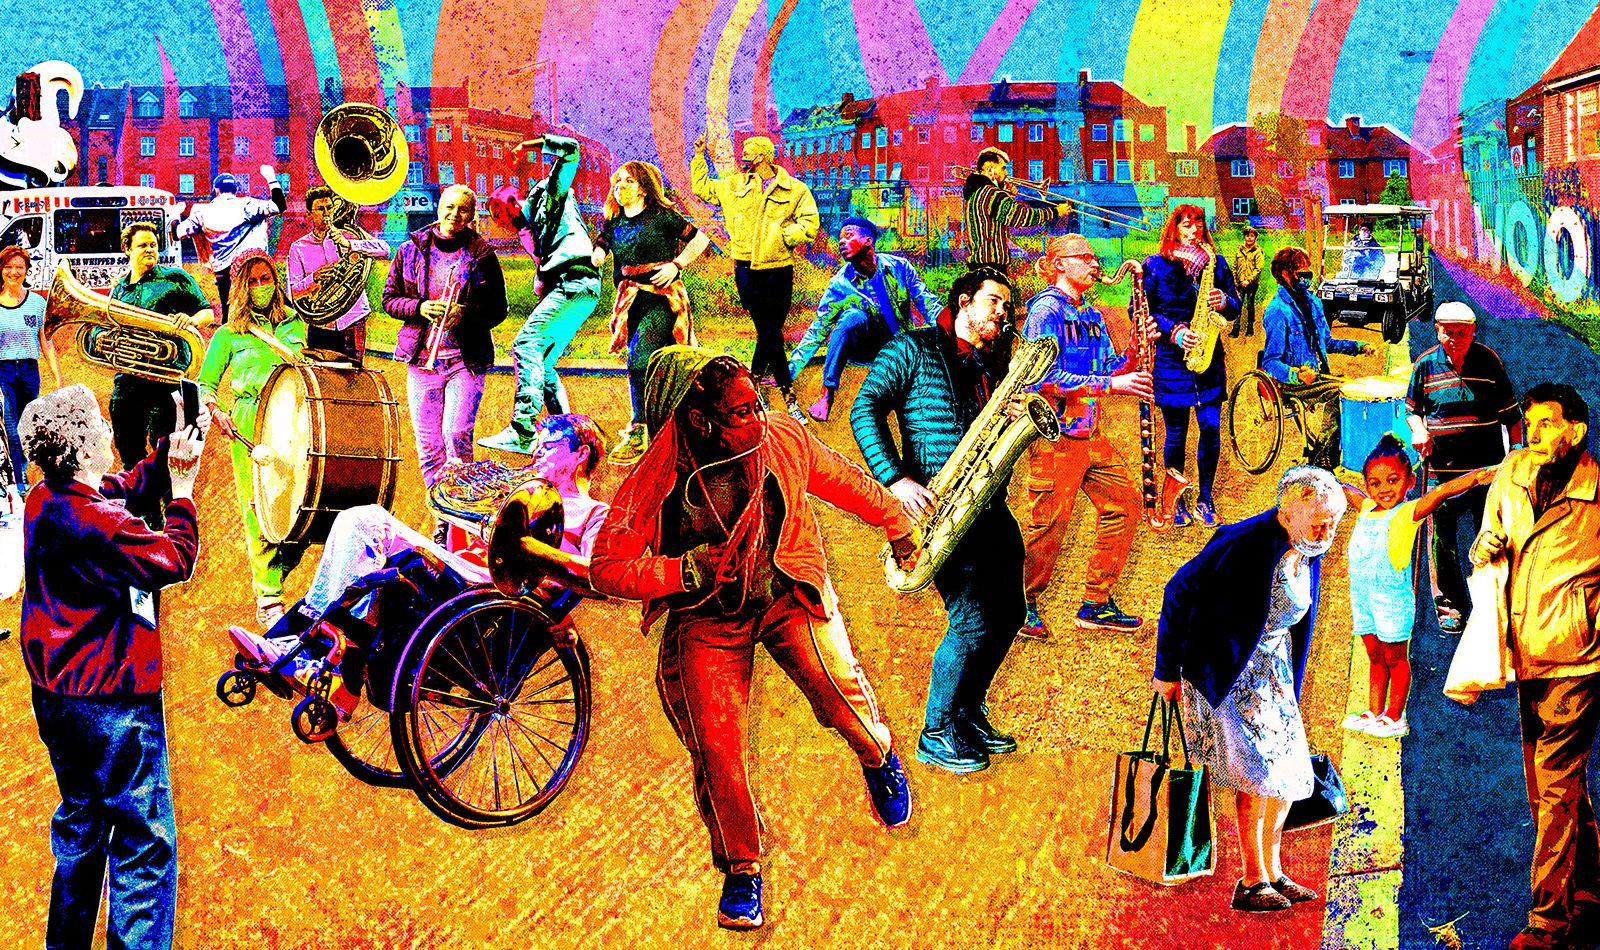 A busy scene made of illustration and photographs of people dancing and playing musical instruments in the street. Bright neon colours